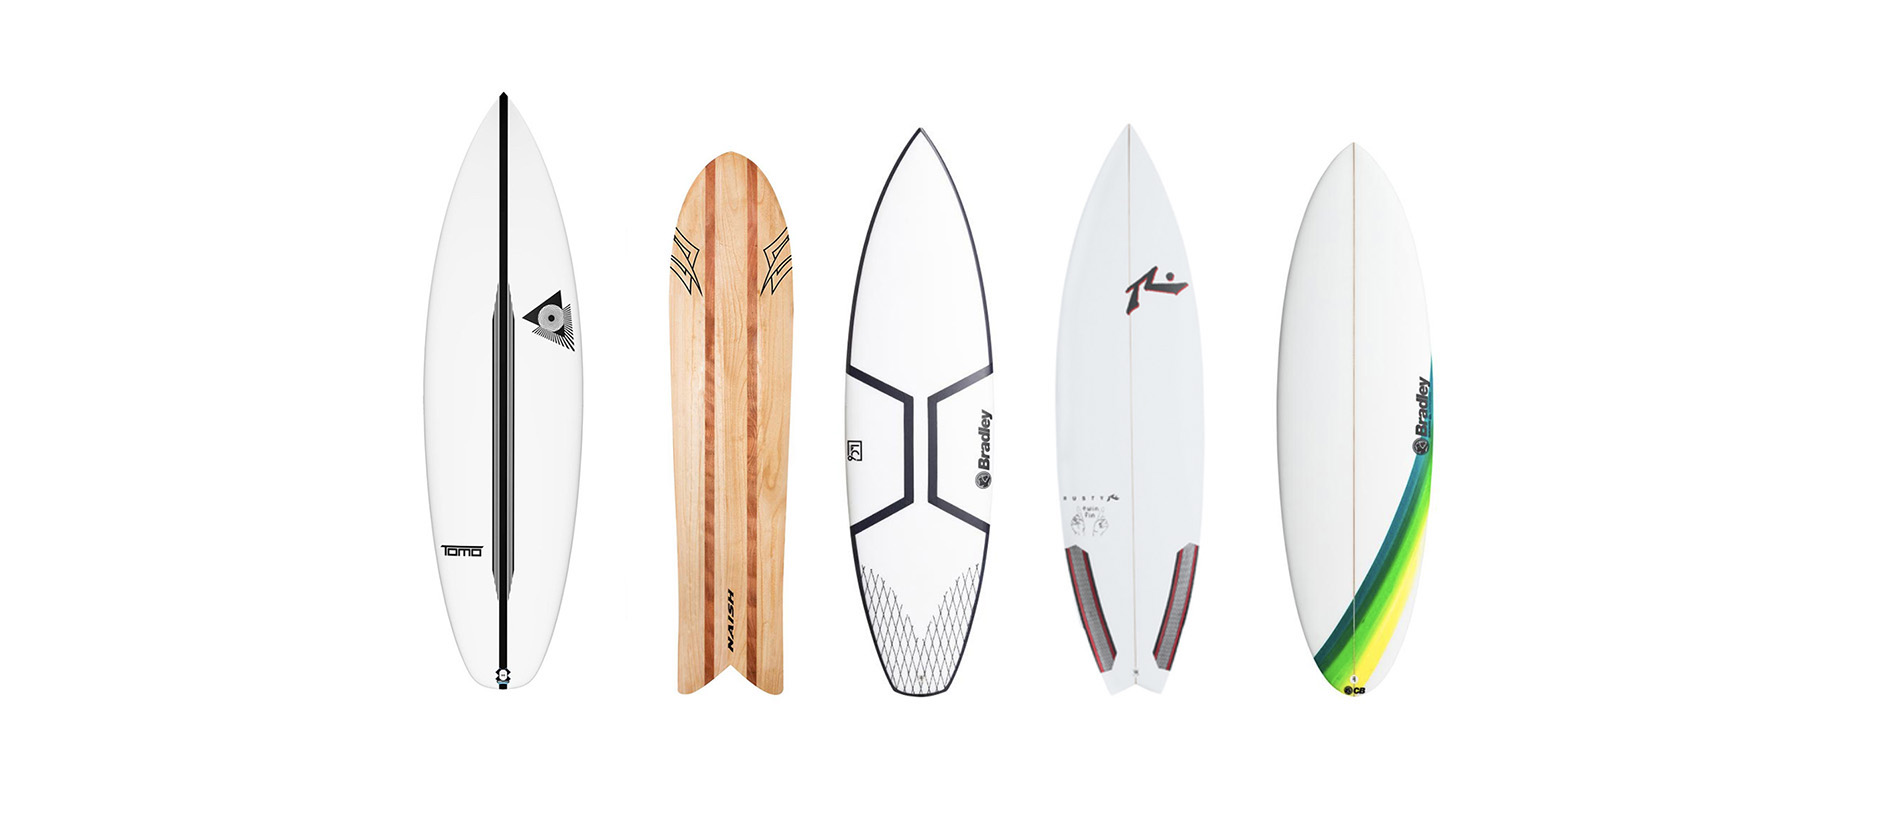 Surfboards for wave pools